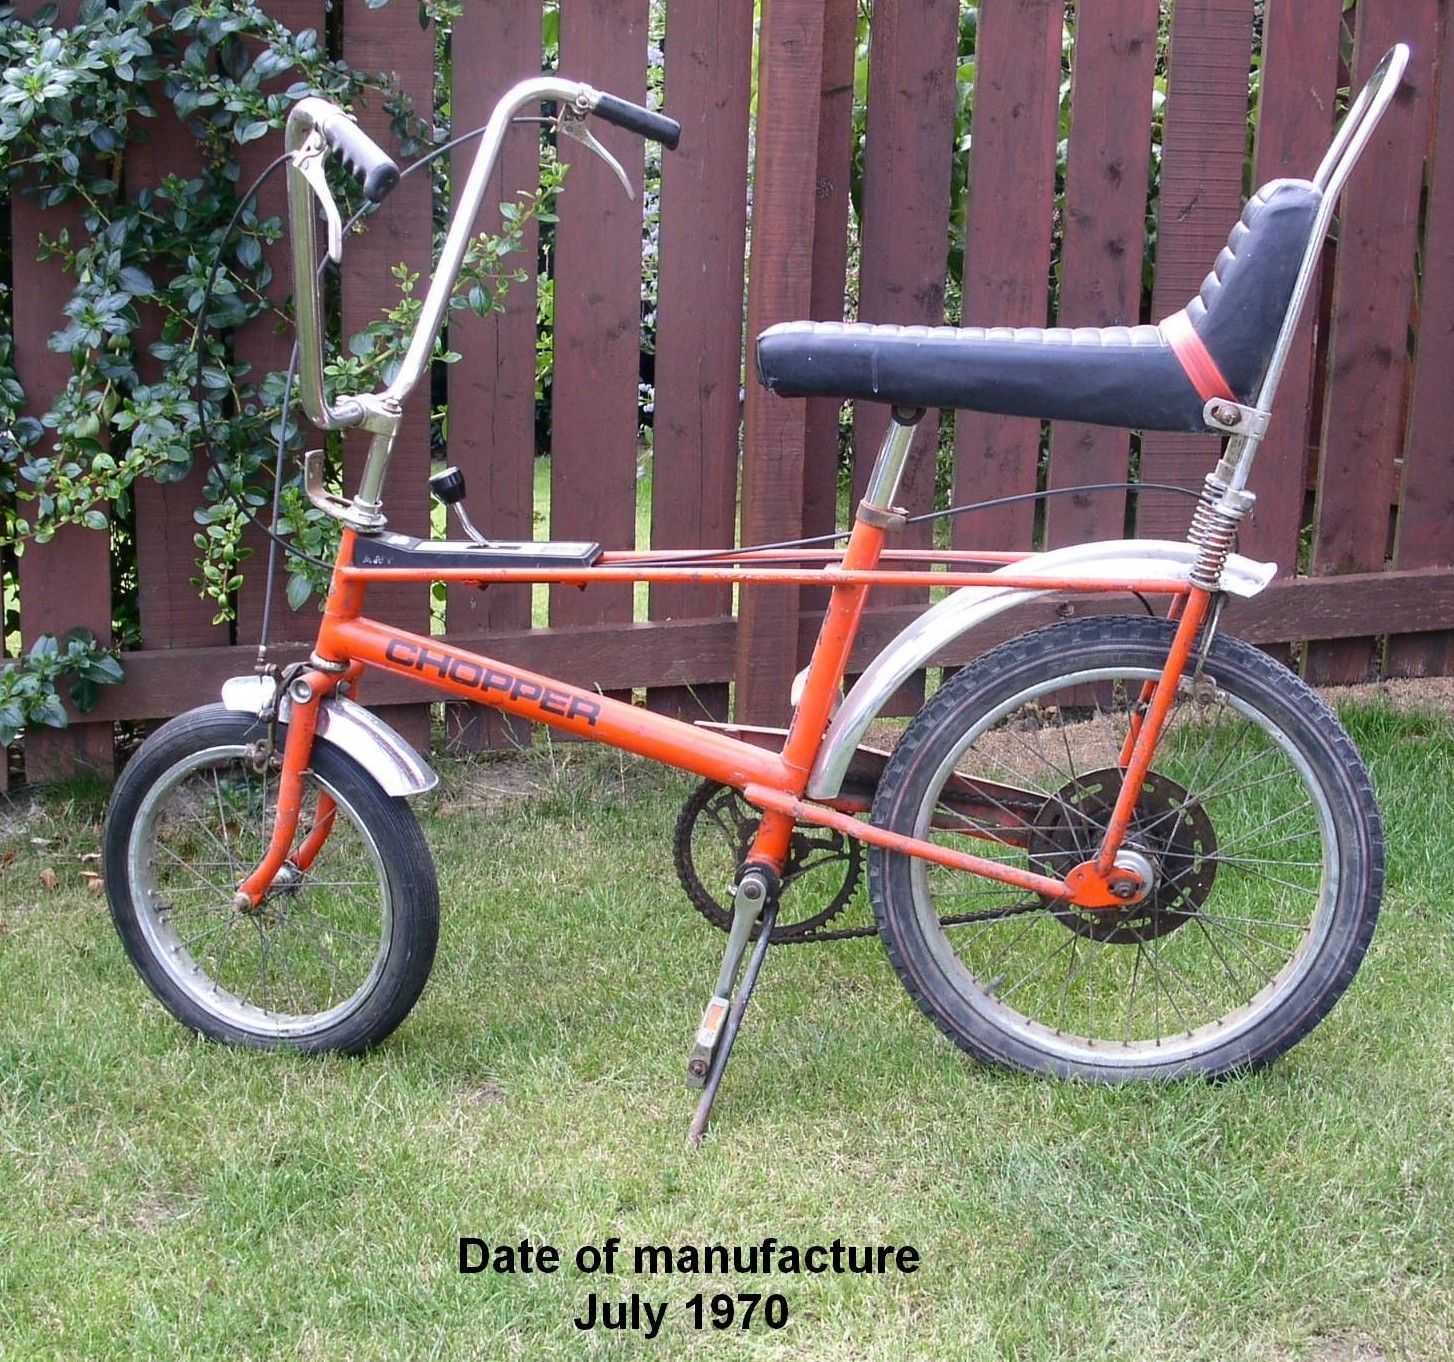 5 Speed Chopper Raleigh Bought This Bike To Ride But Steve